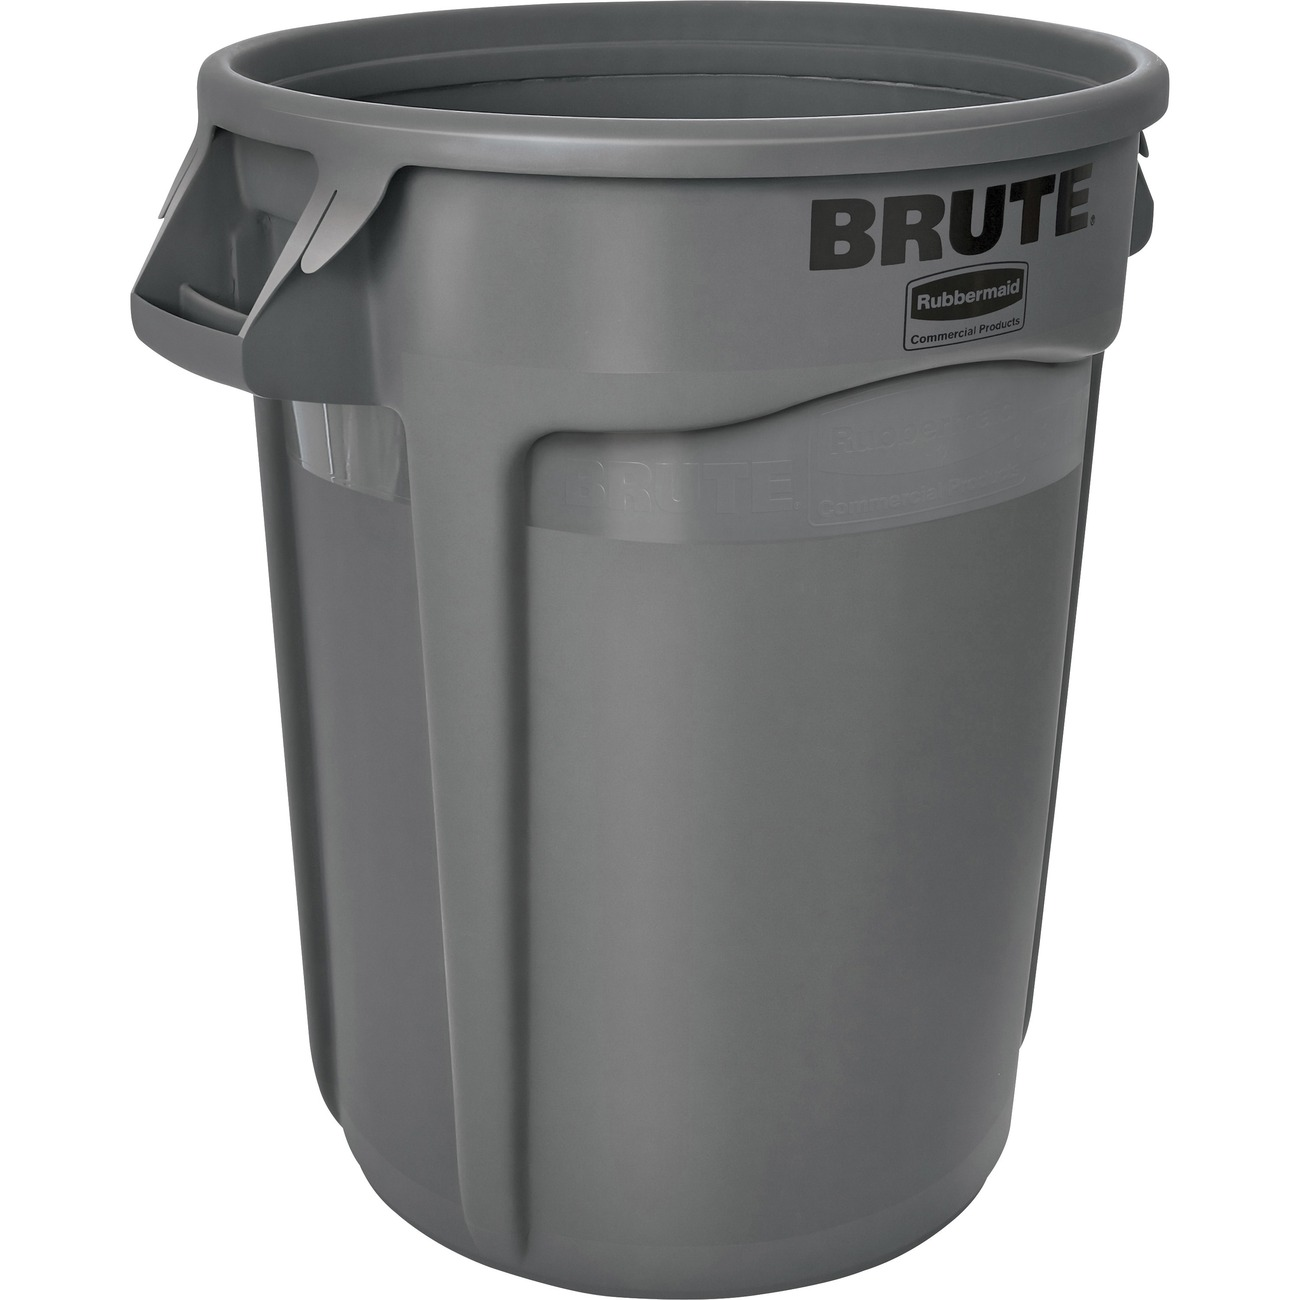 Rubbermaid Commercial Brute Round Container 121 13 L Capacity Plastic Gray